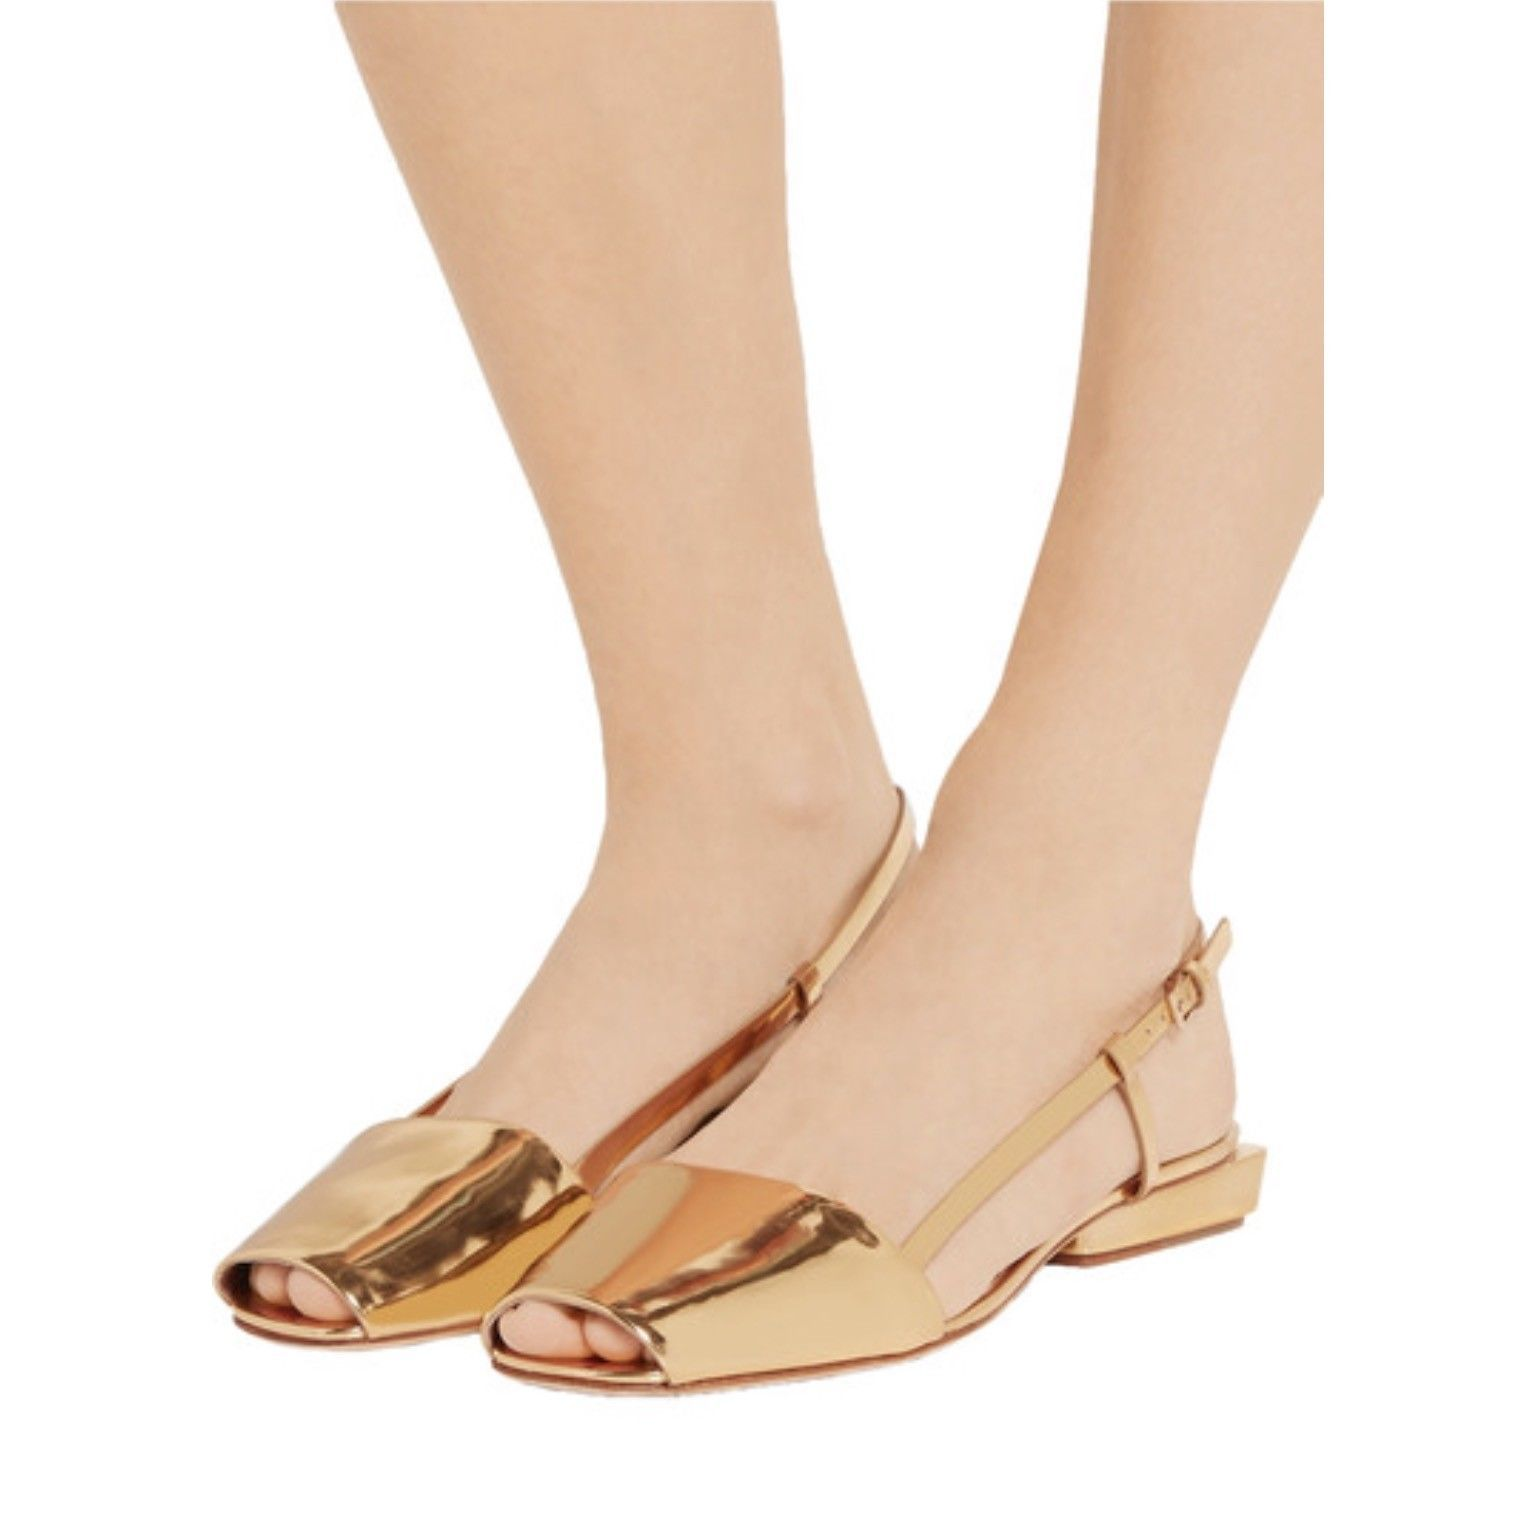 a43b4298a Tory Burch Pietra Leather Runway Flat Sandal and 50 similar items